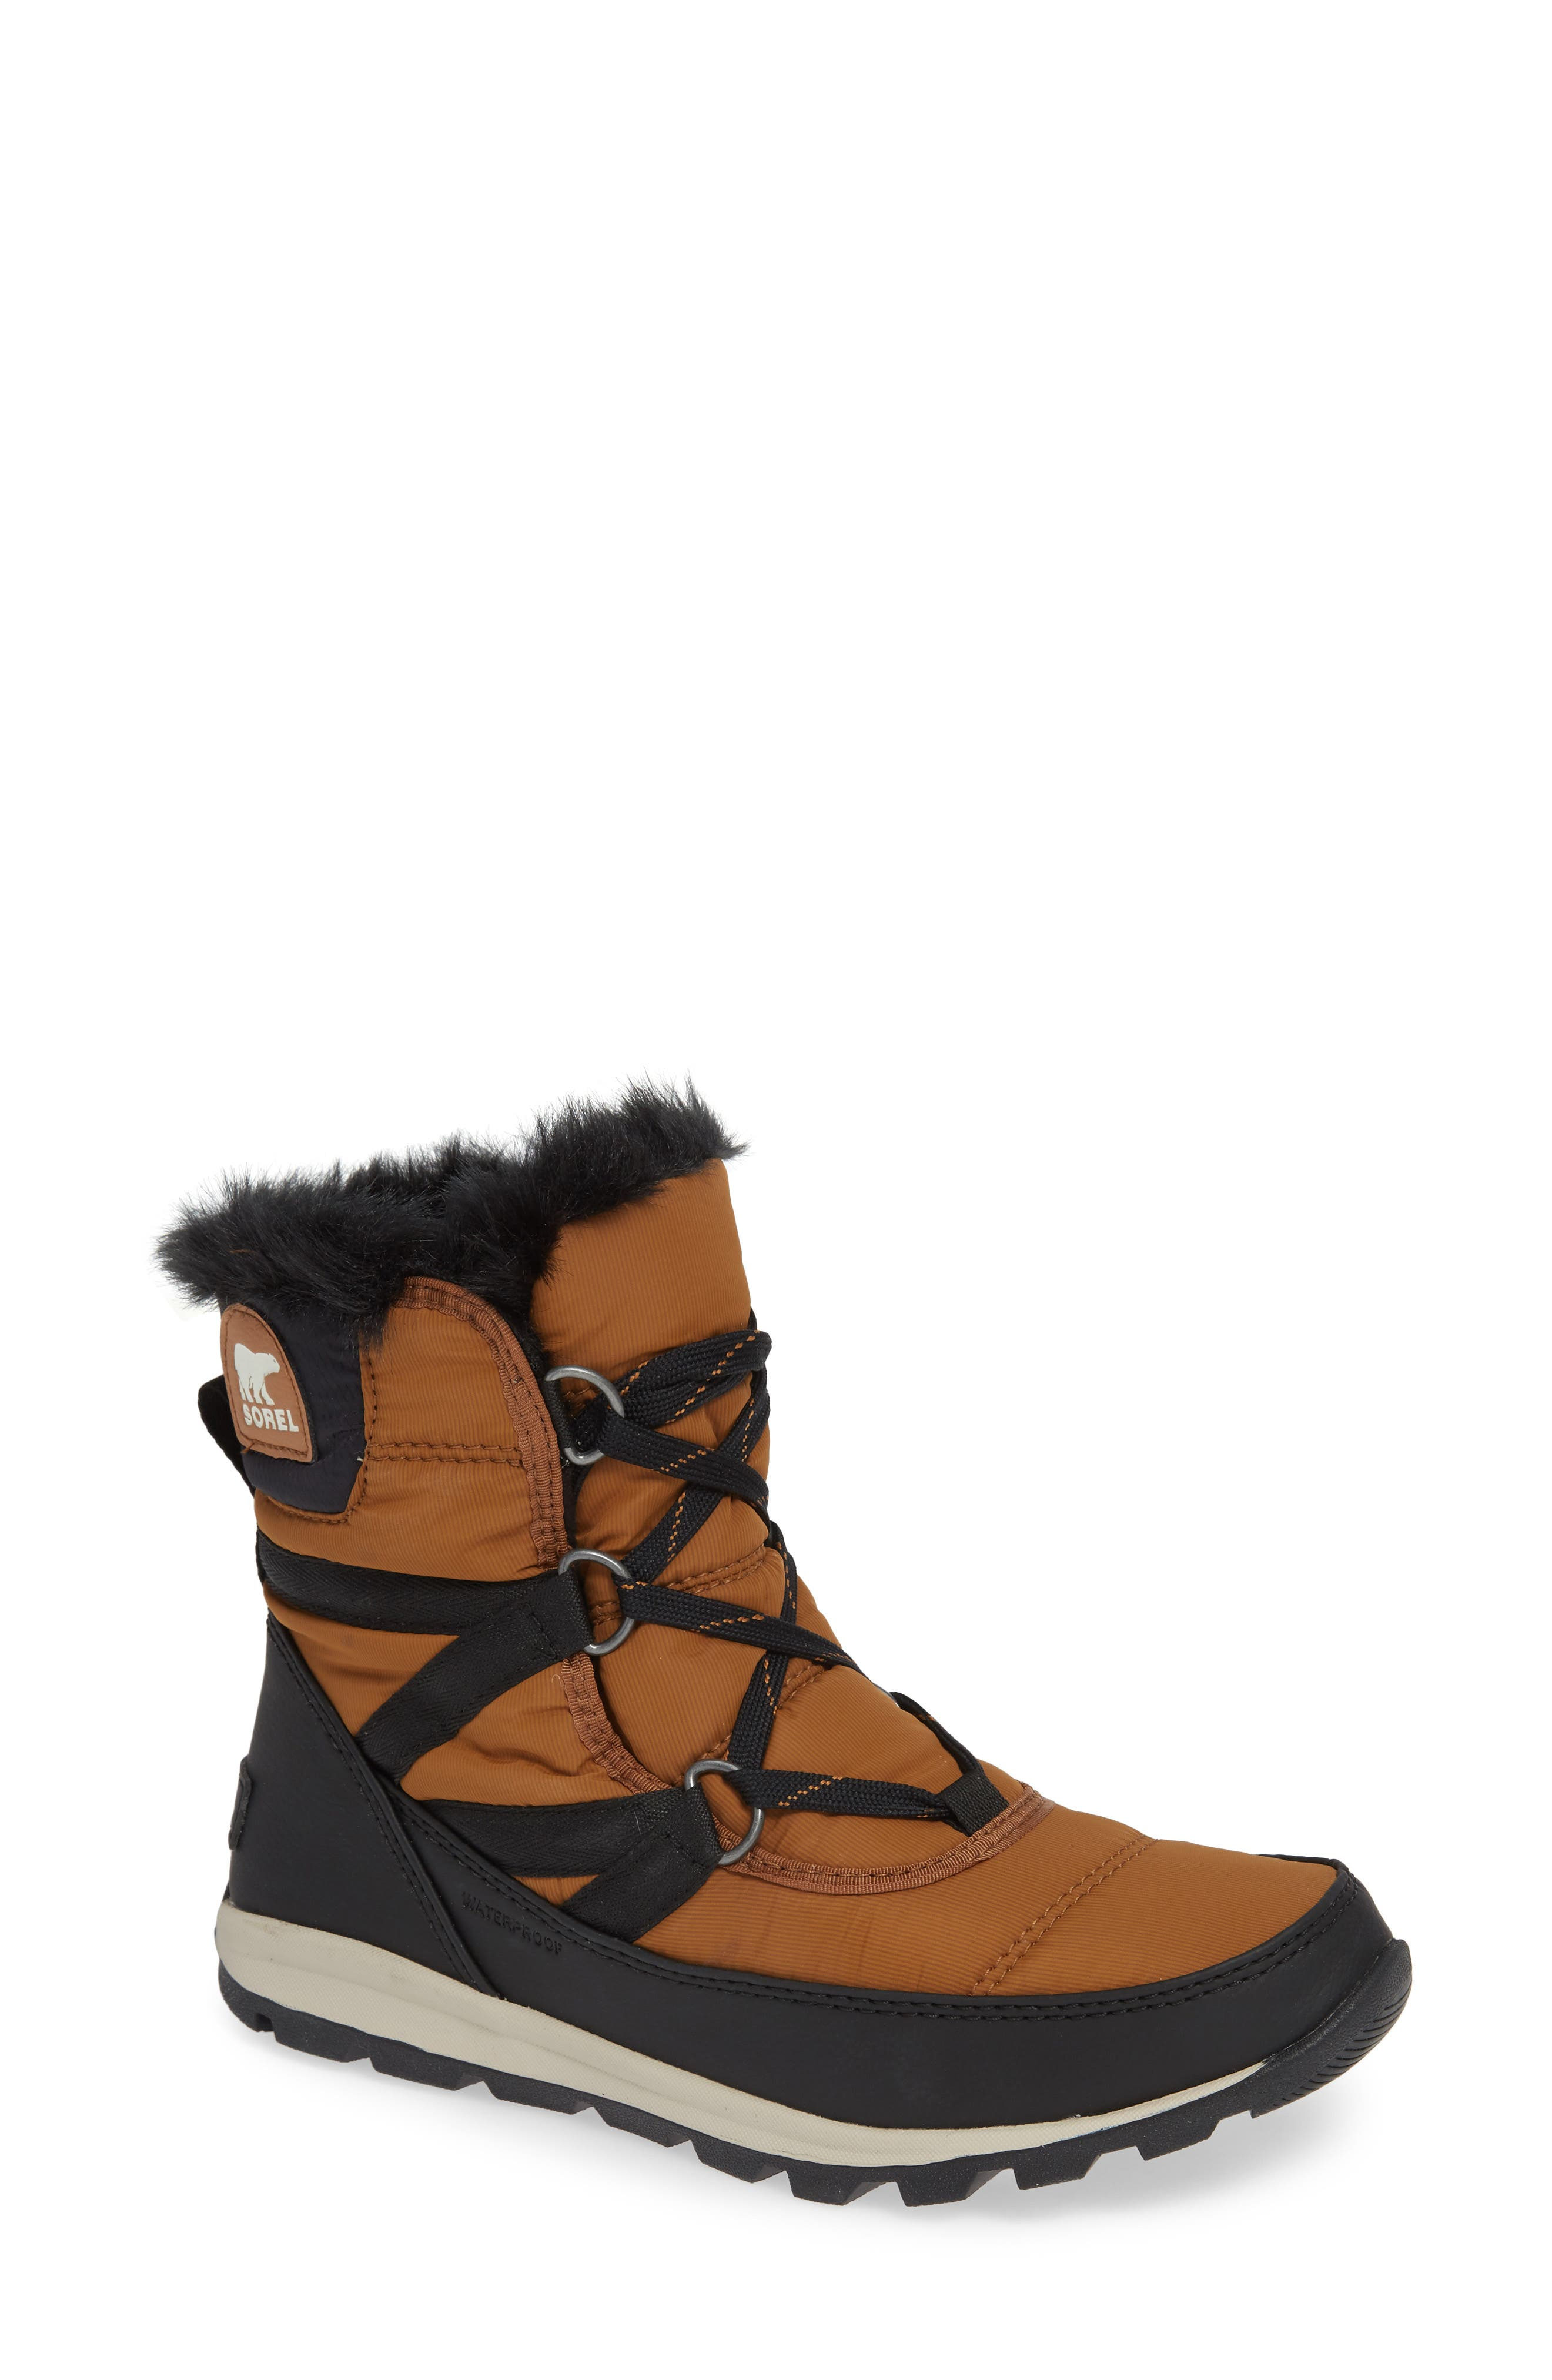 Whitney Snow Bootie,                         Main,                         color, CAMEL BROWN